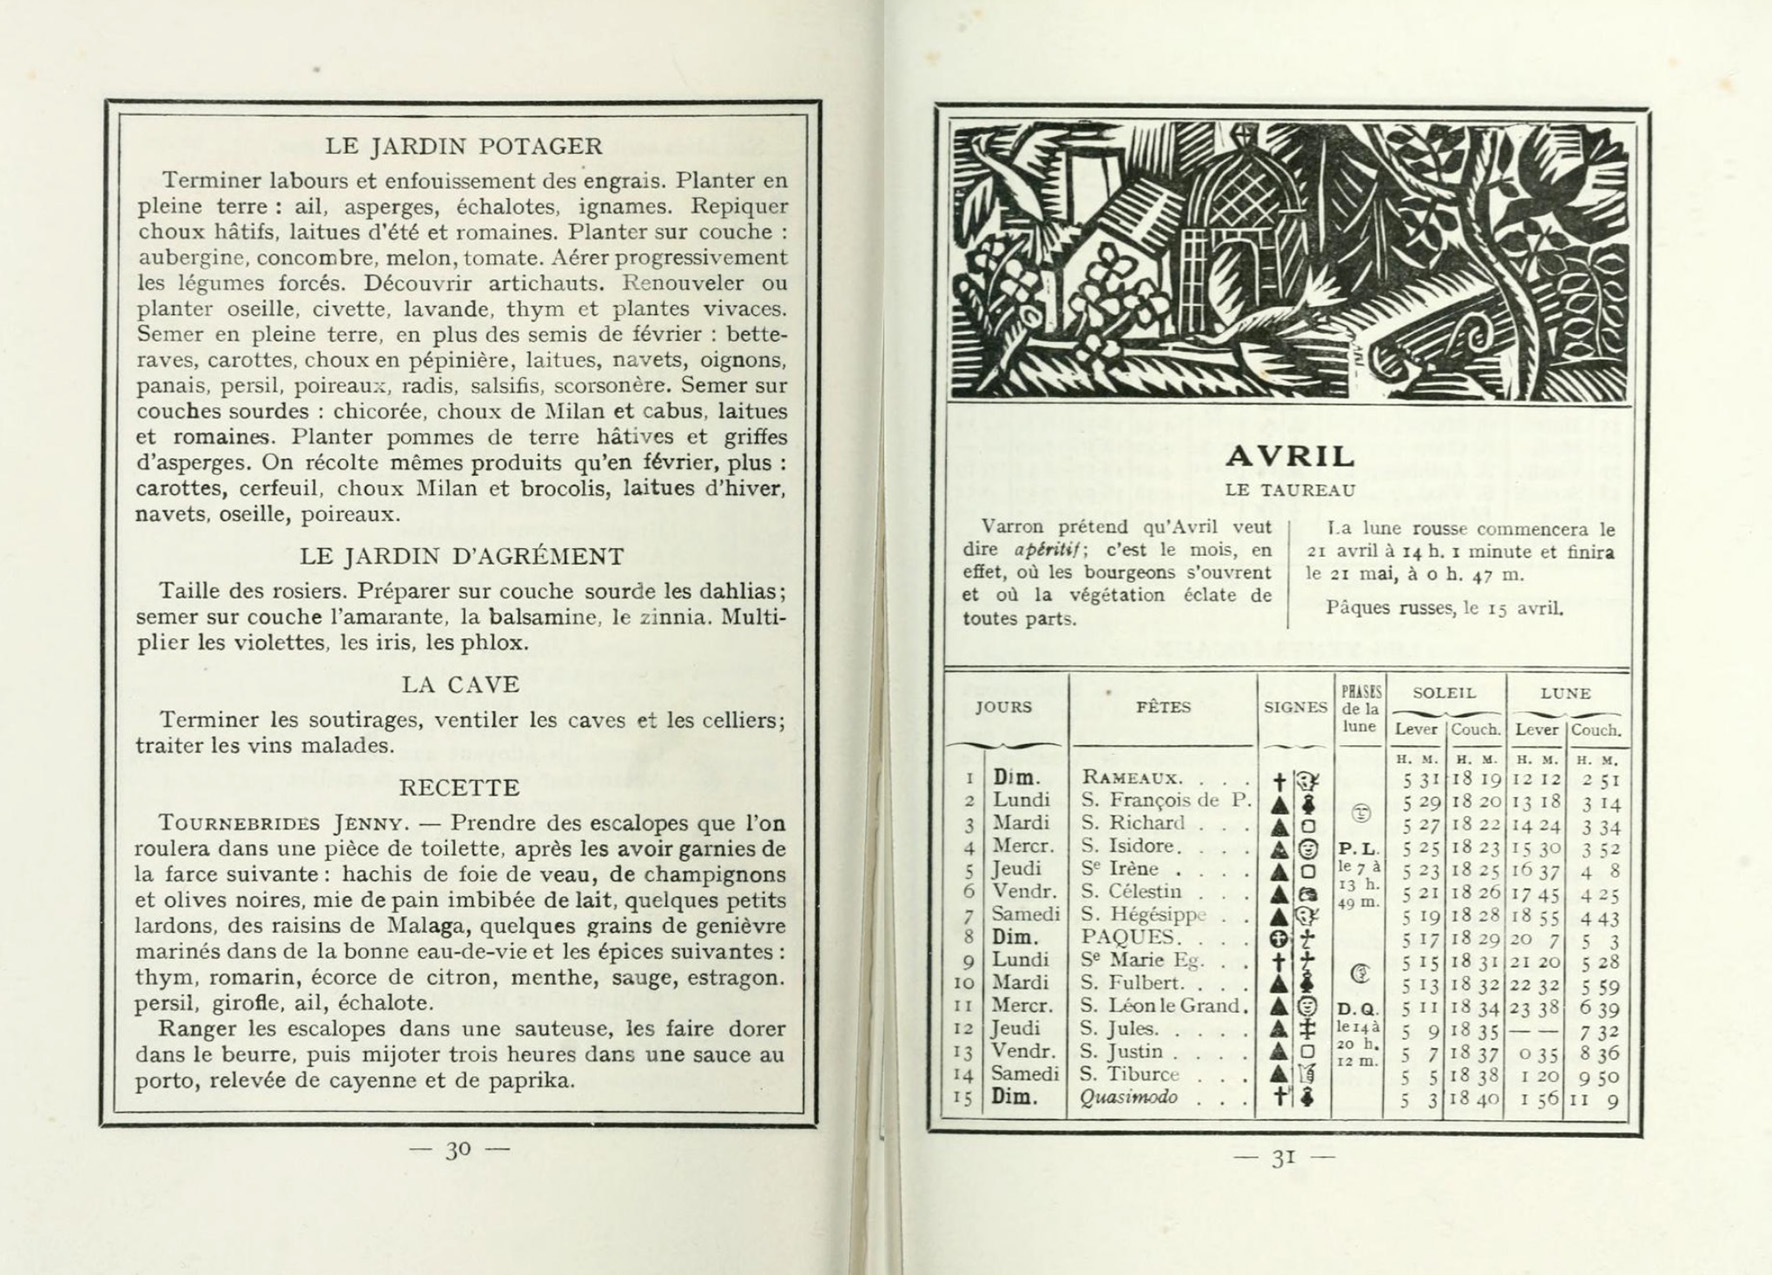 Almanach des lettres et des arts, 1917 Collection universityofottawa; toronto